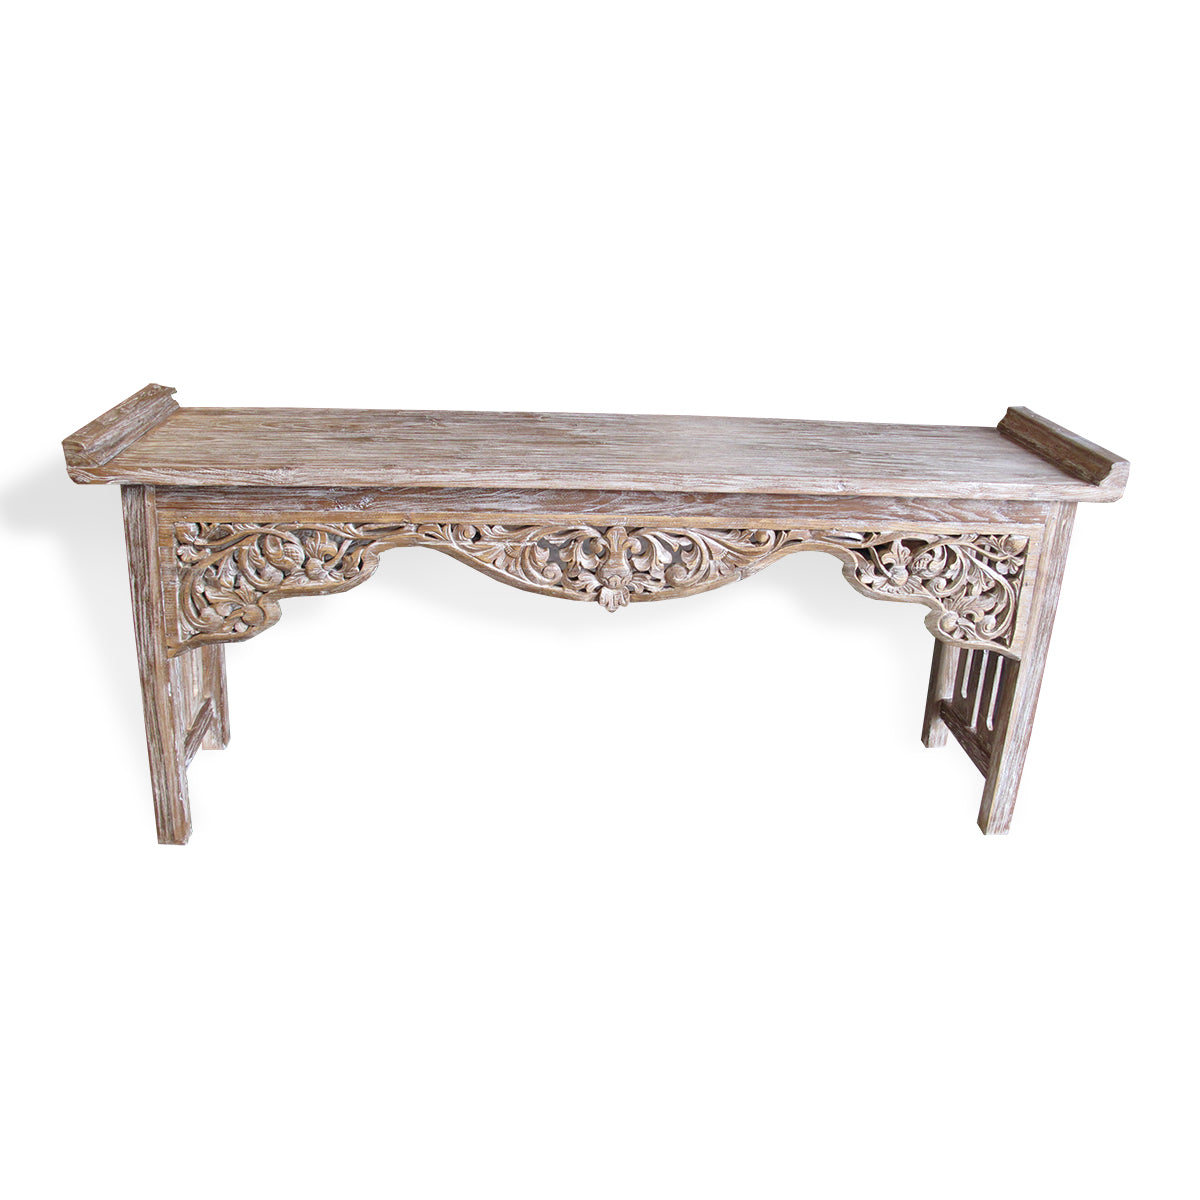 LAC047 CARVED RECYCLED TEAK CONSOLE